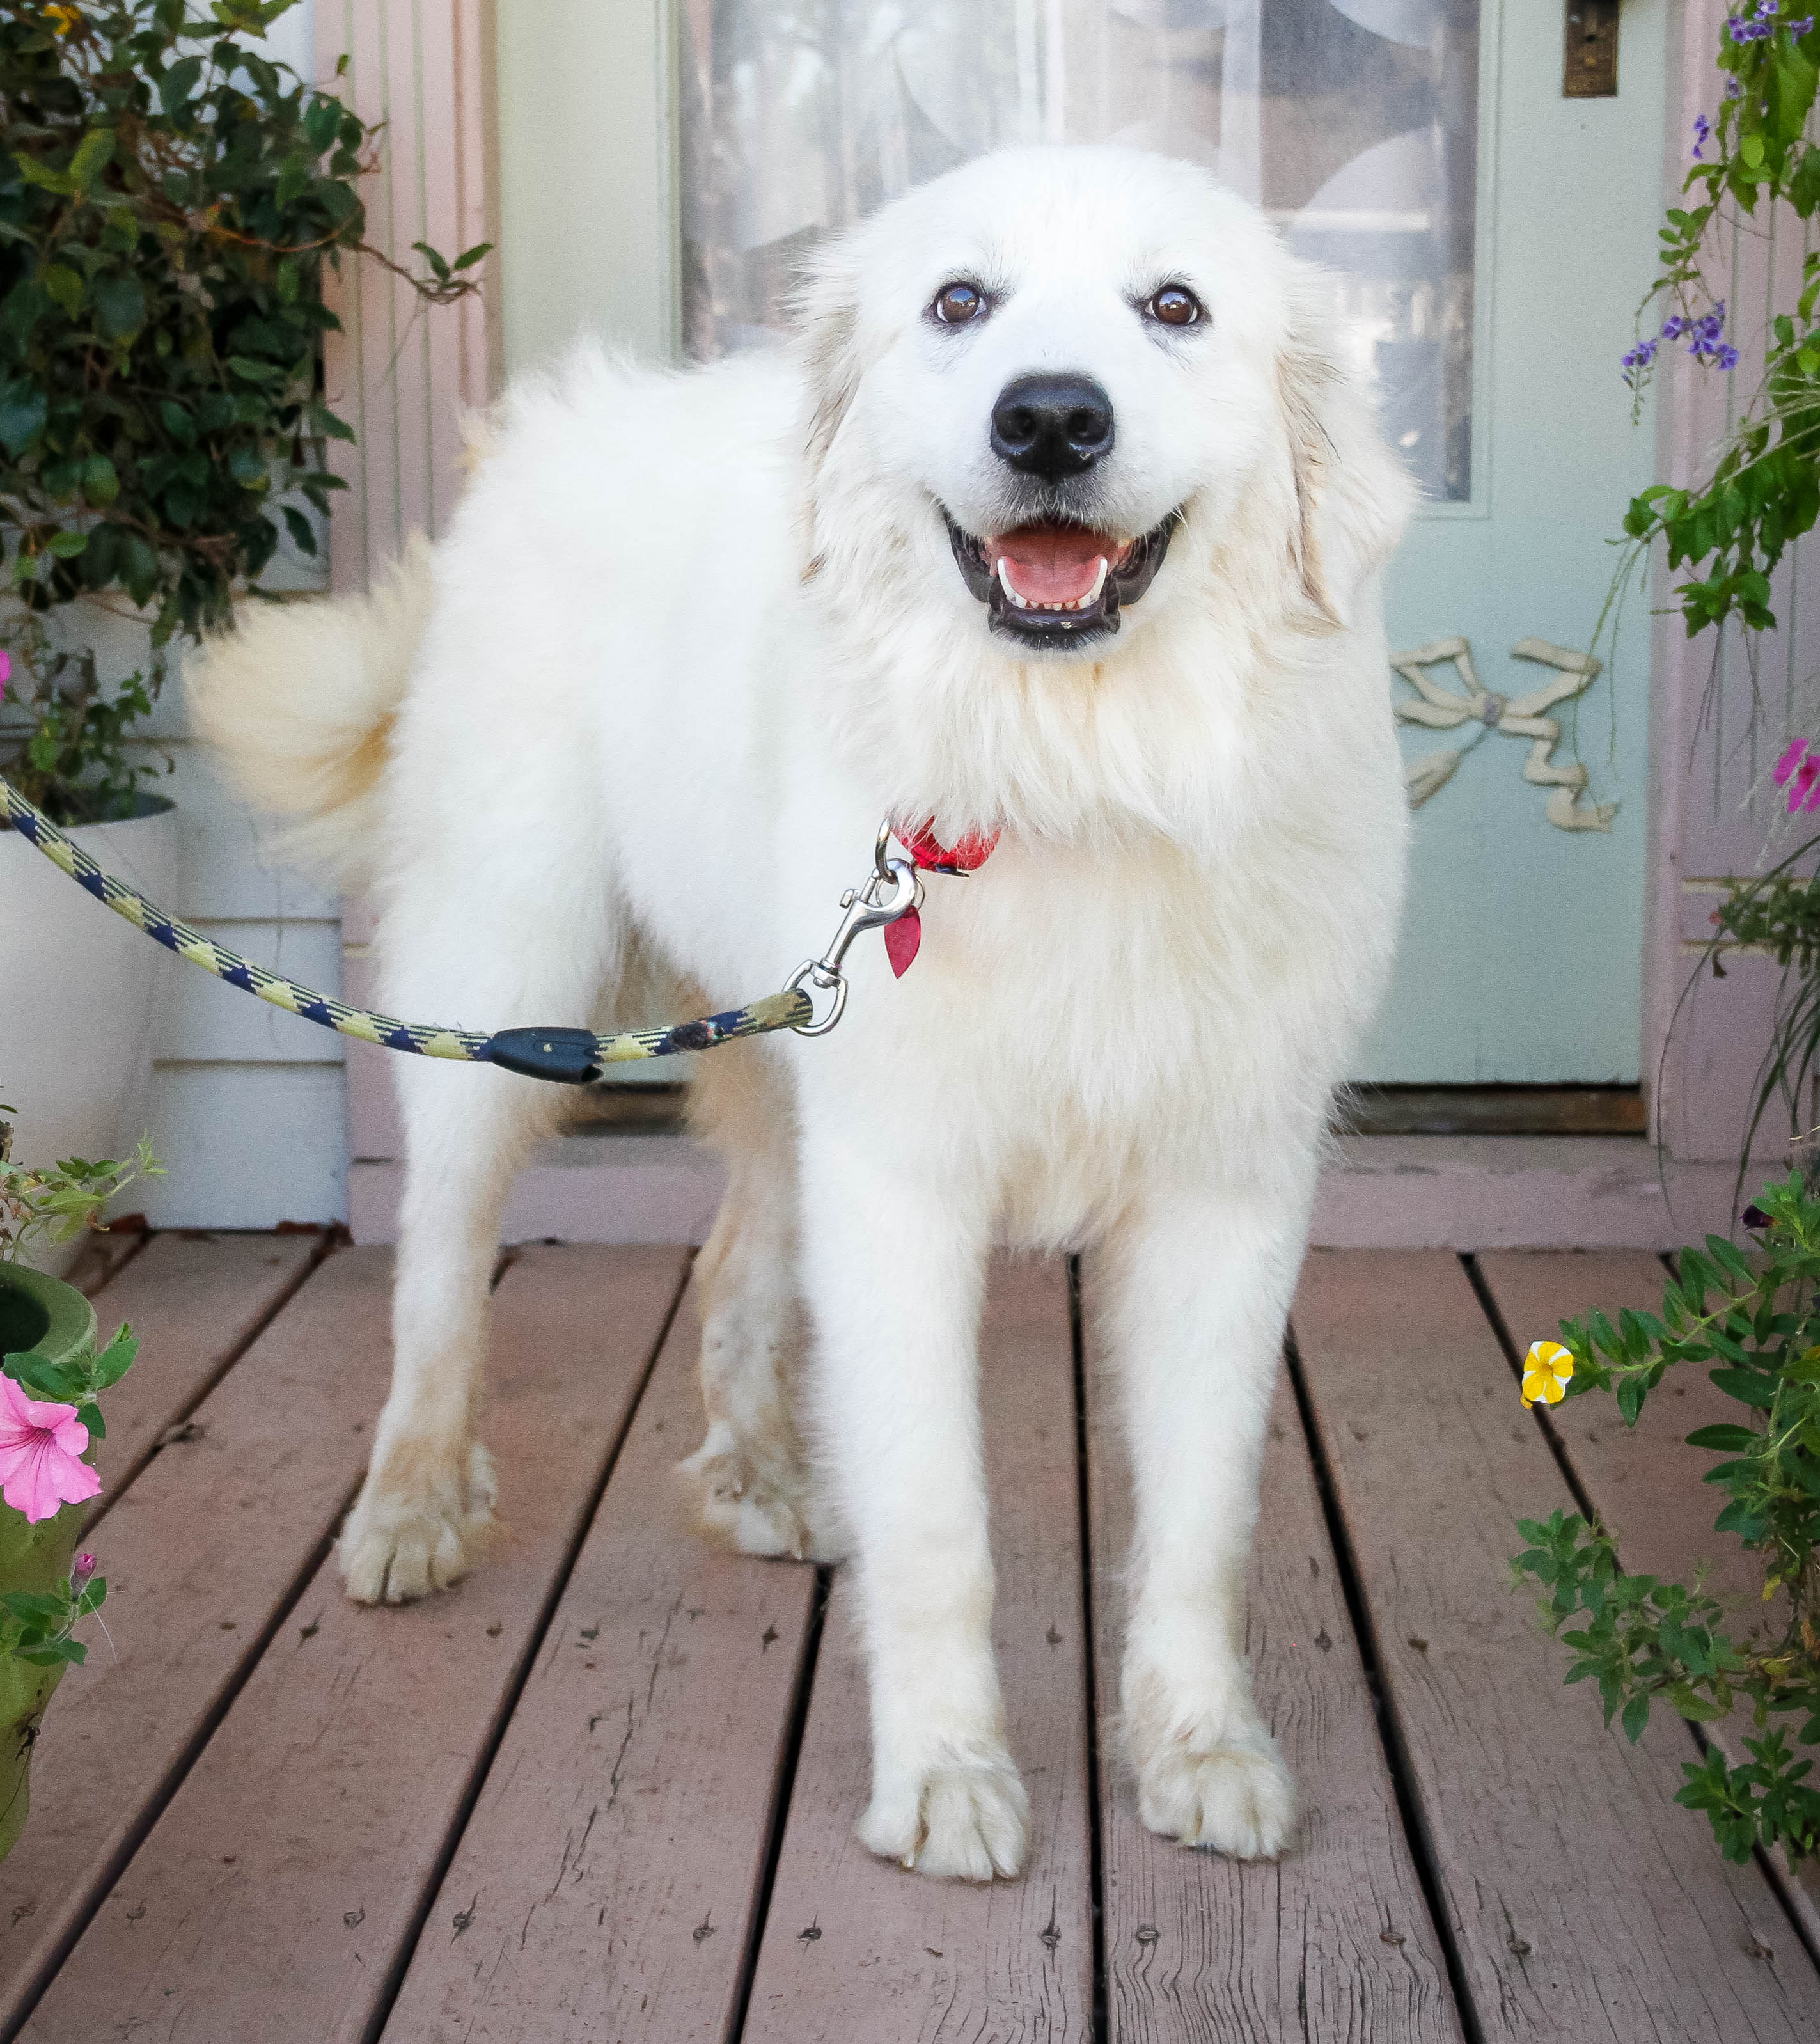 Great Pyrenees - Dogs 101 Animal Planet